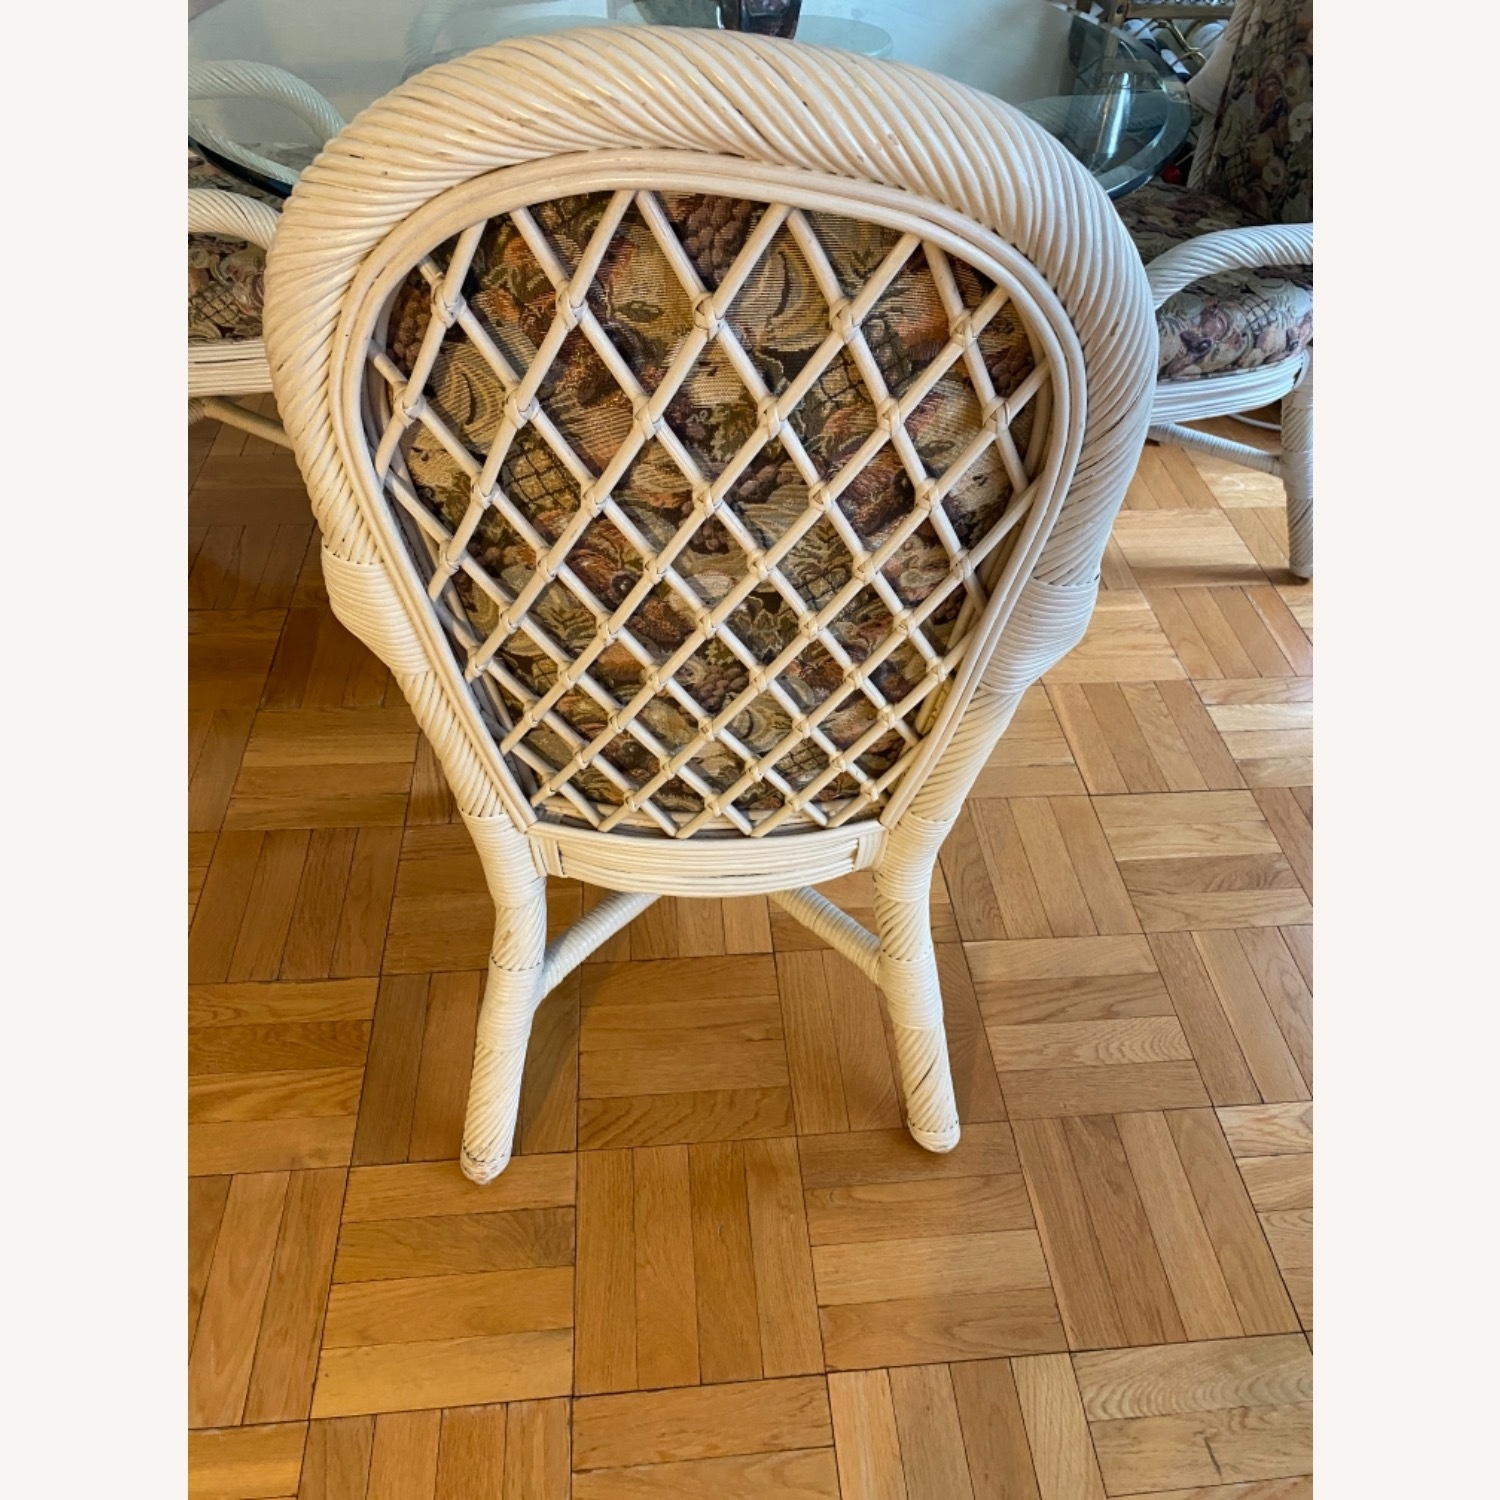 Wicker Upholstered Dining Table + 4 Chairs - image-3